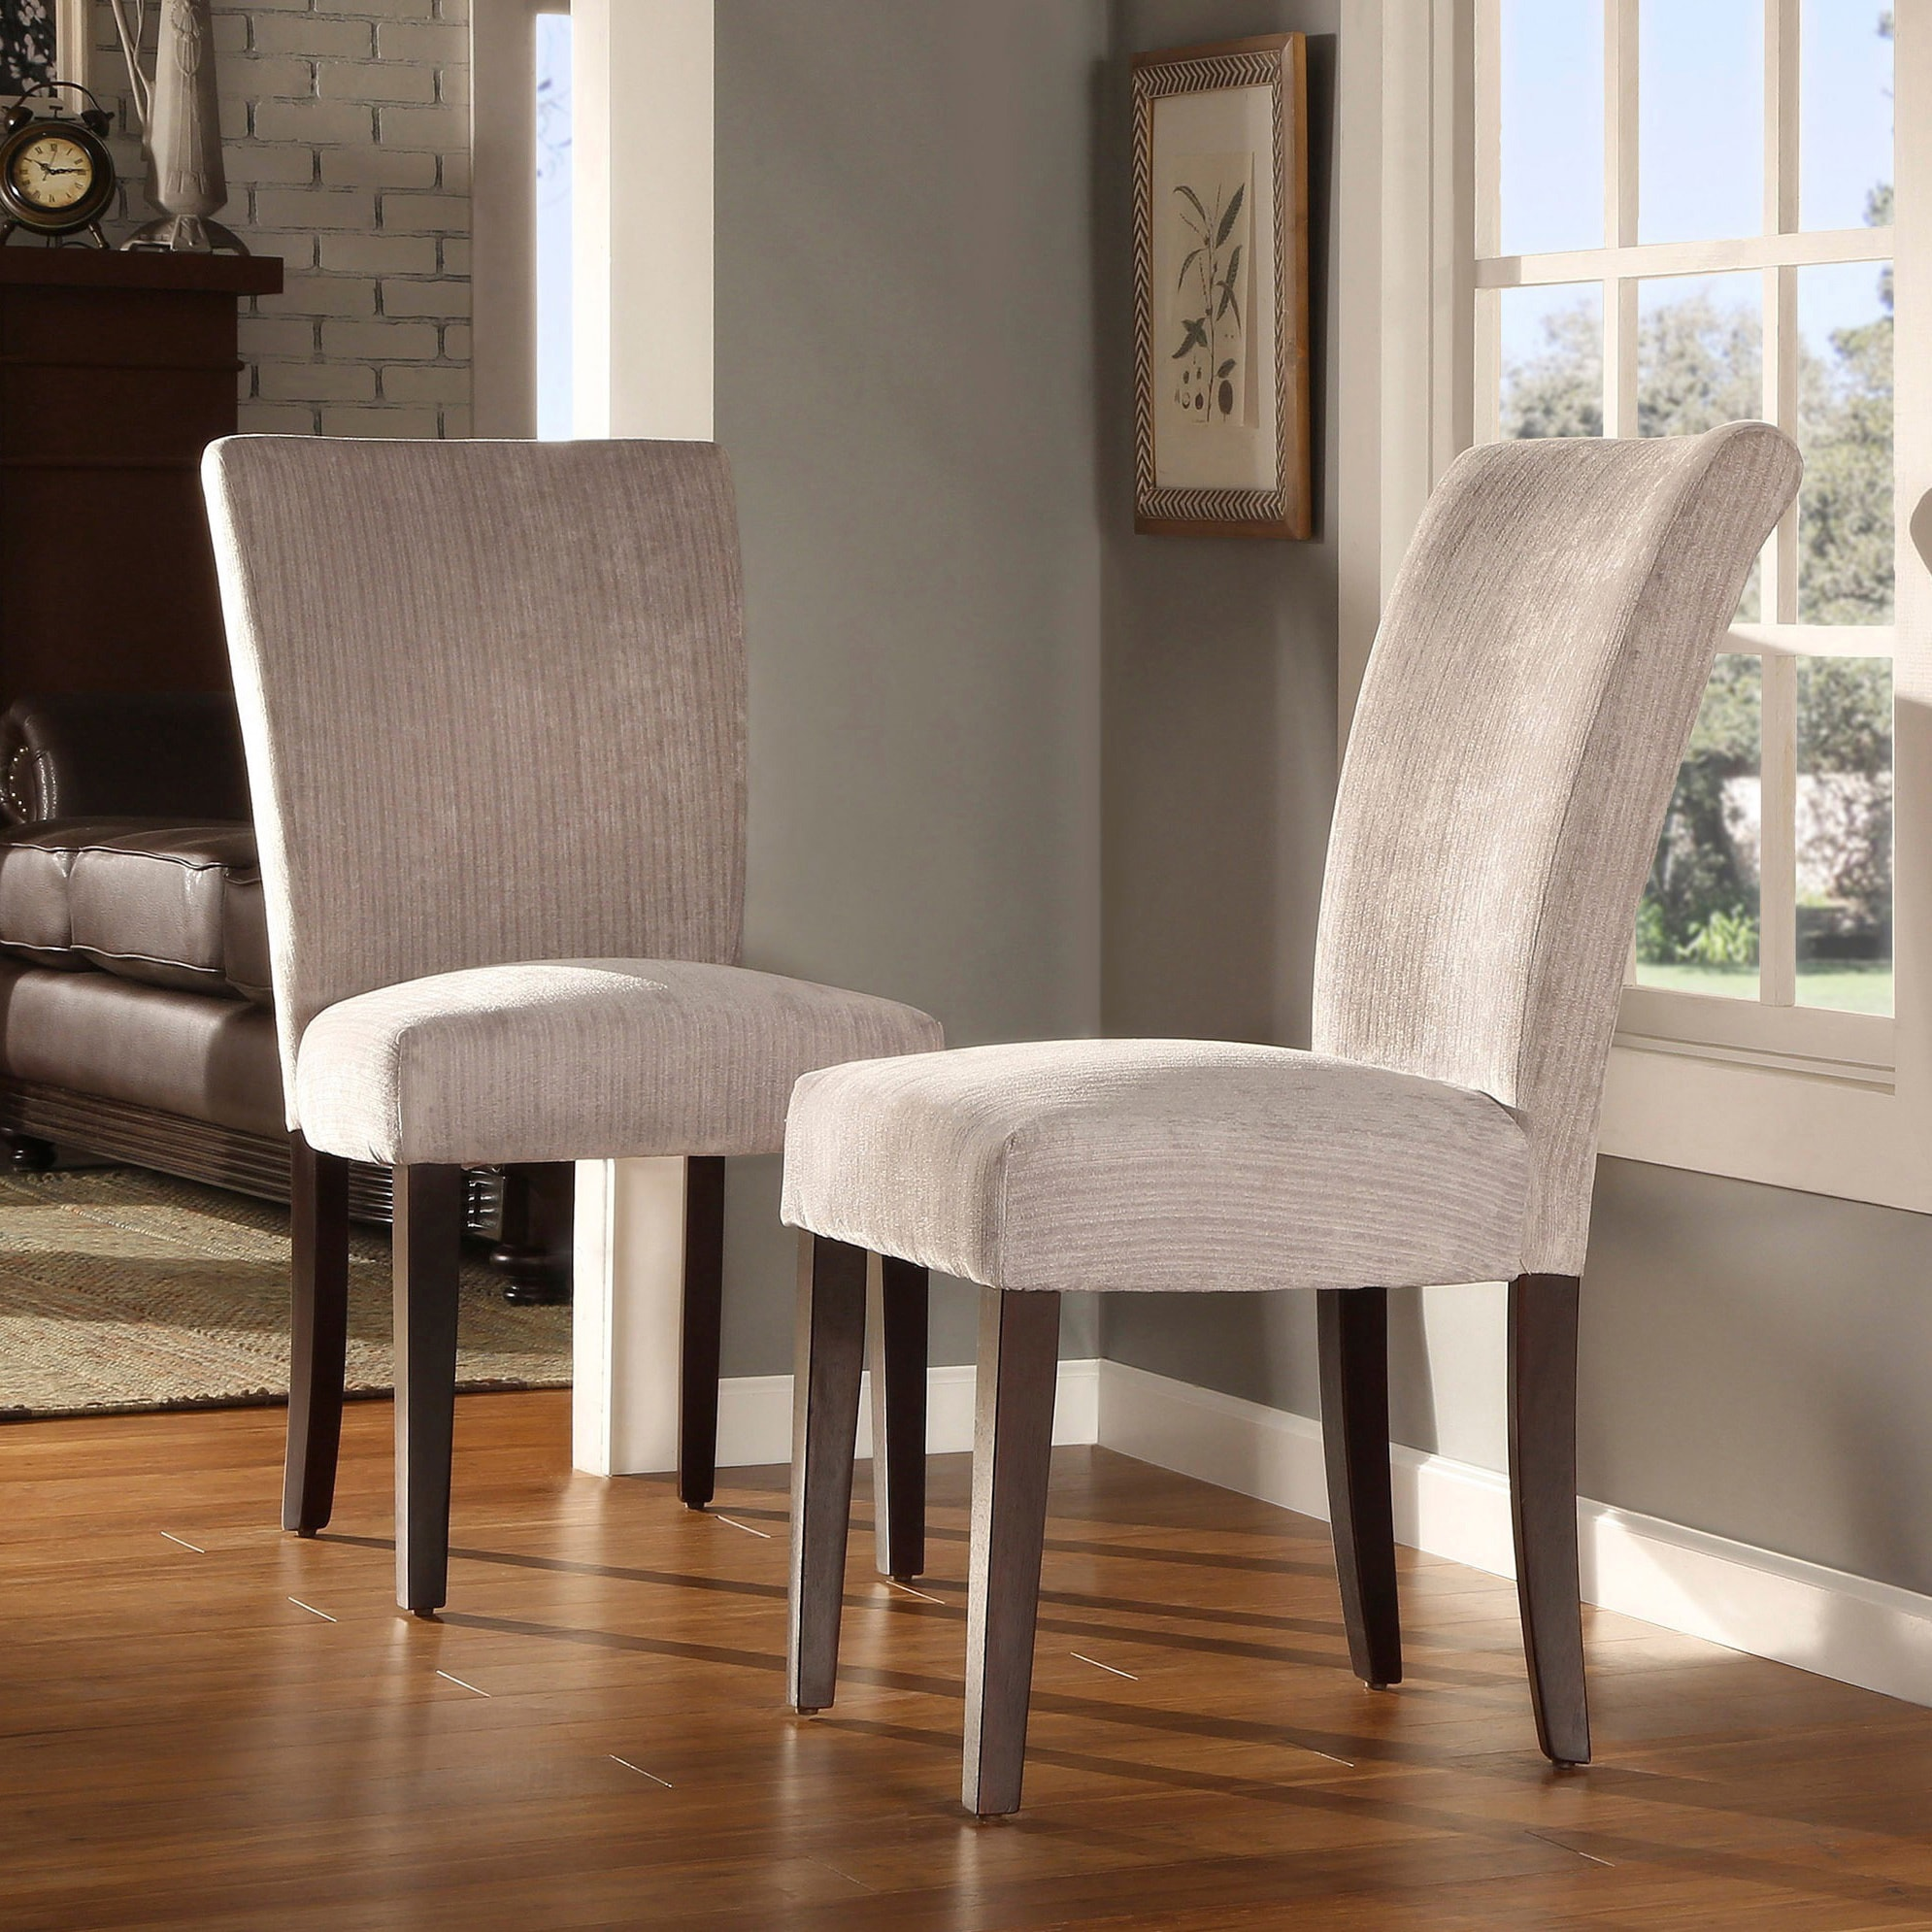 dining upholstered host with products height parson riley chair trim width stylus item threshold nailhead stoney